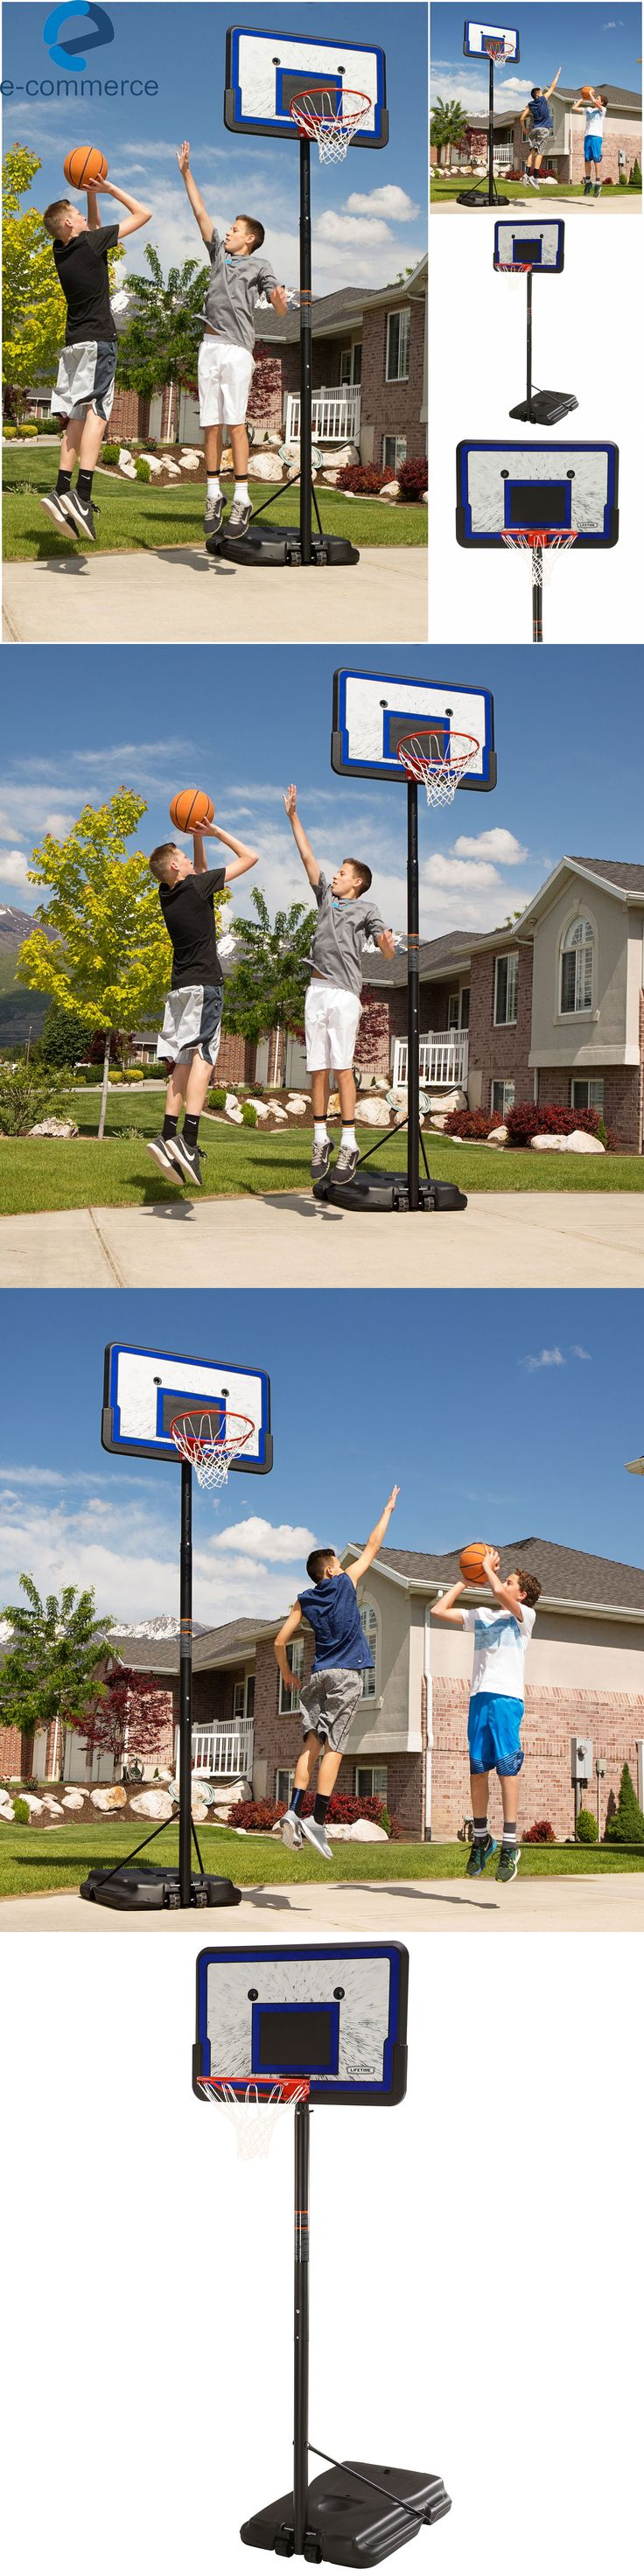 backboard systems 21196 lifetime pro court portable outdoor